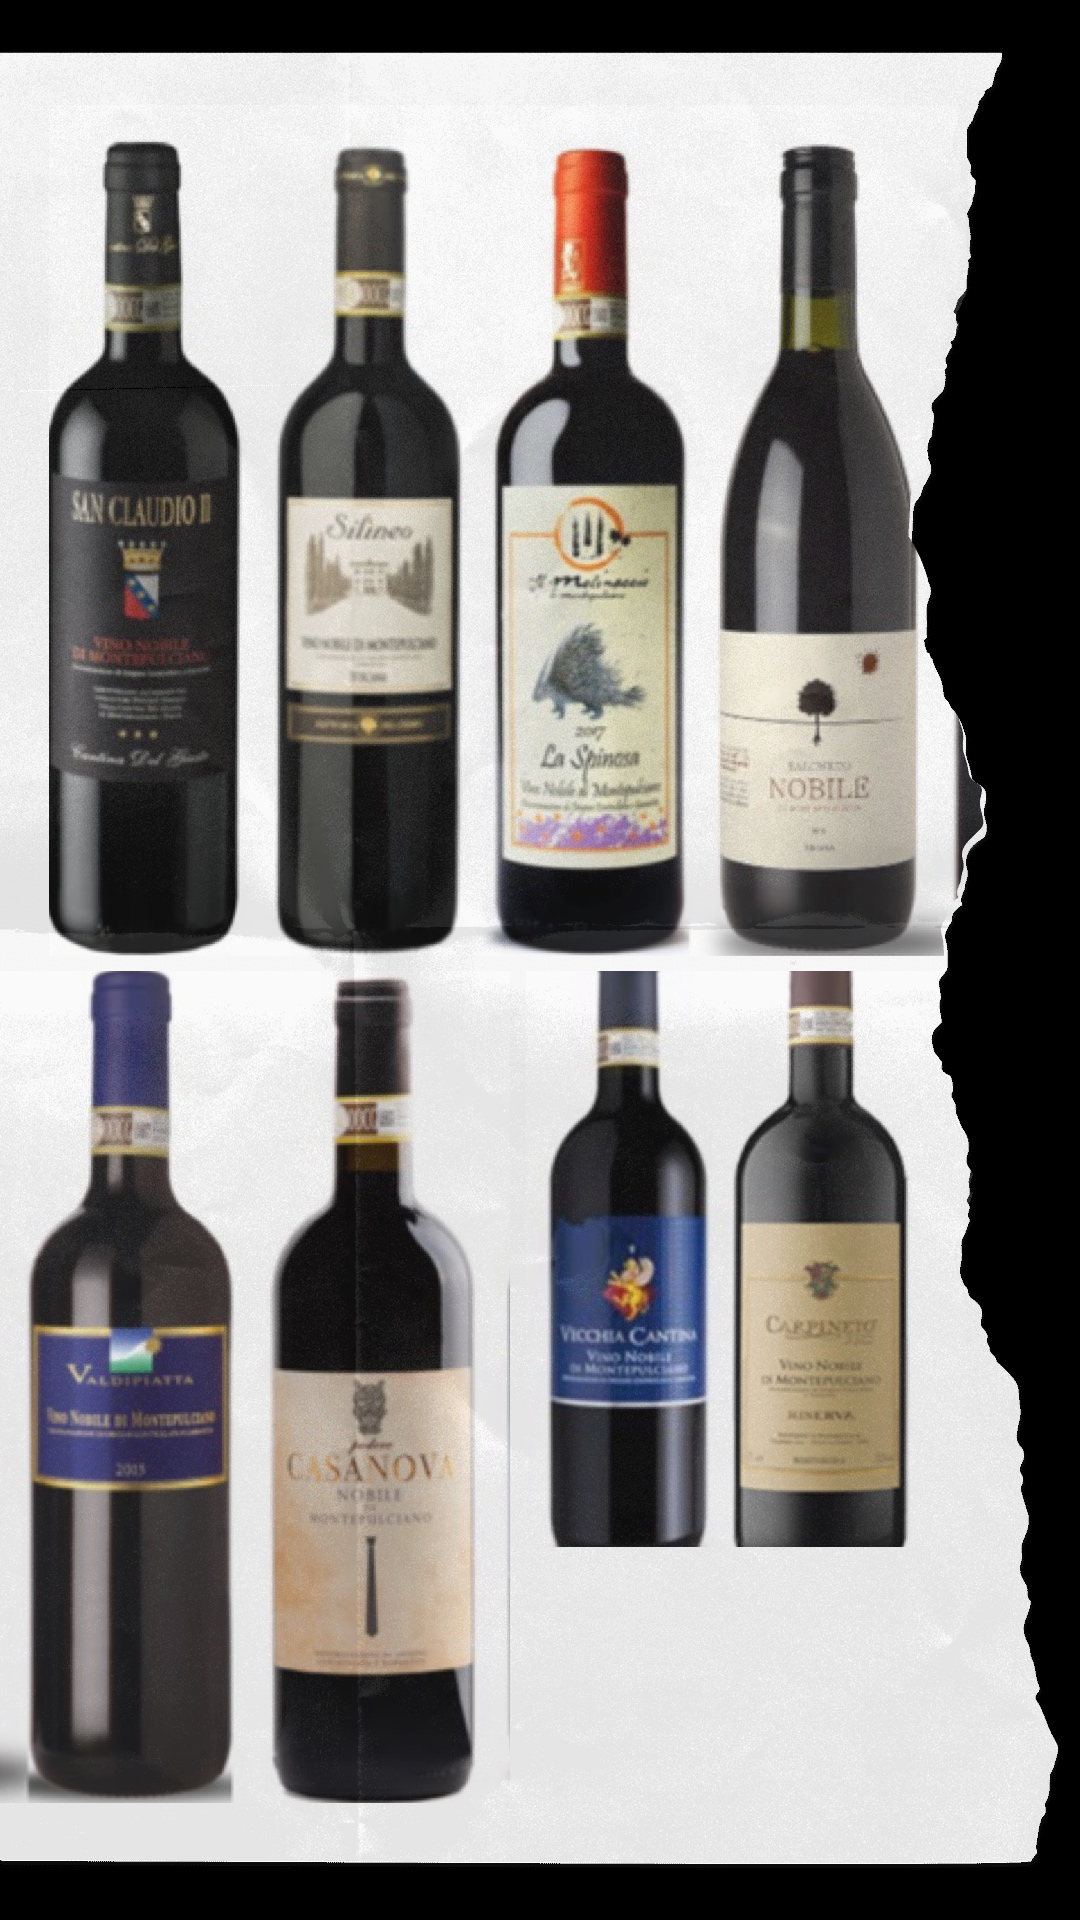 Celebrating Wines of Italy: Vino Nobile di Montepulciano